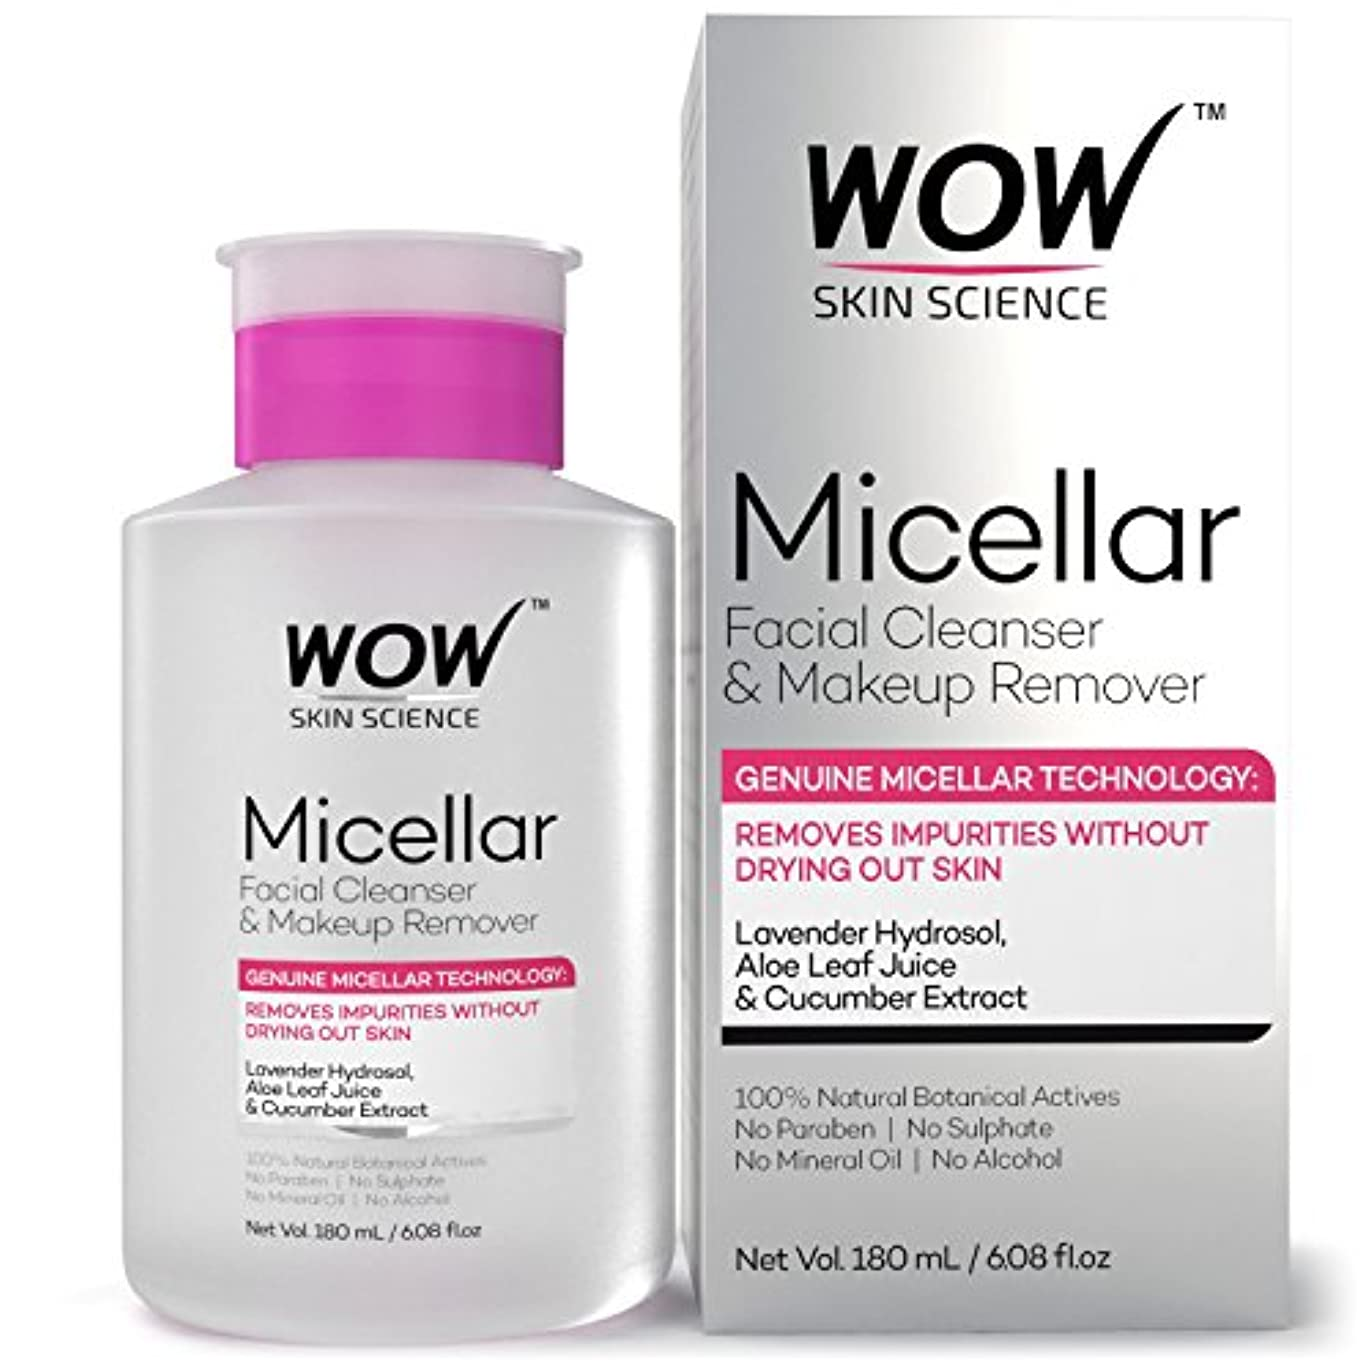 果てしない宣伝エレクトロニックWOW Micellar Facial Cleanser & Make Up Remover No Parabens, Sulphates, Mineral Oil, Alcohol & Synthetic Fragrance Water, 180mL